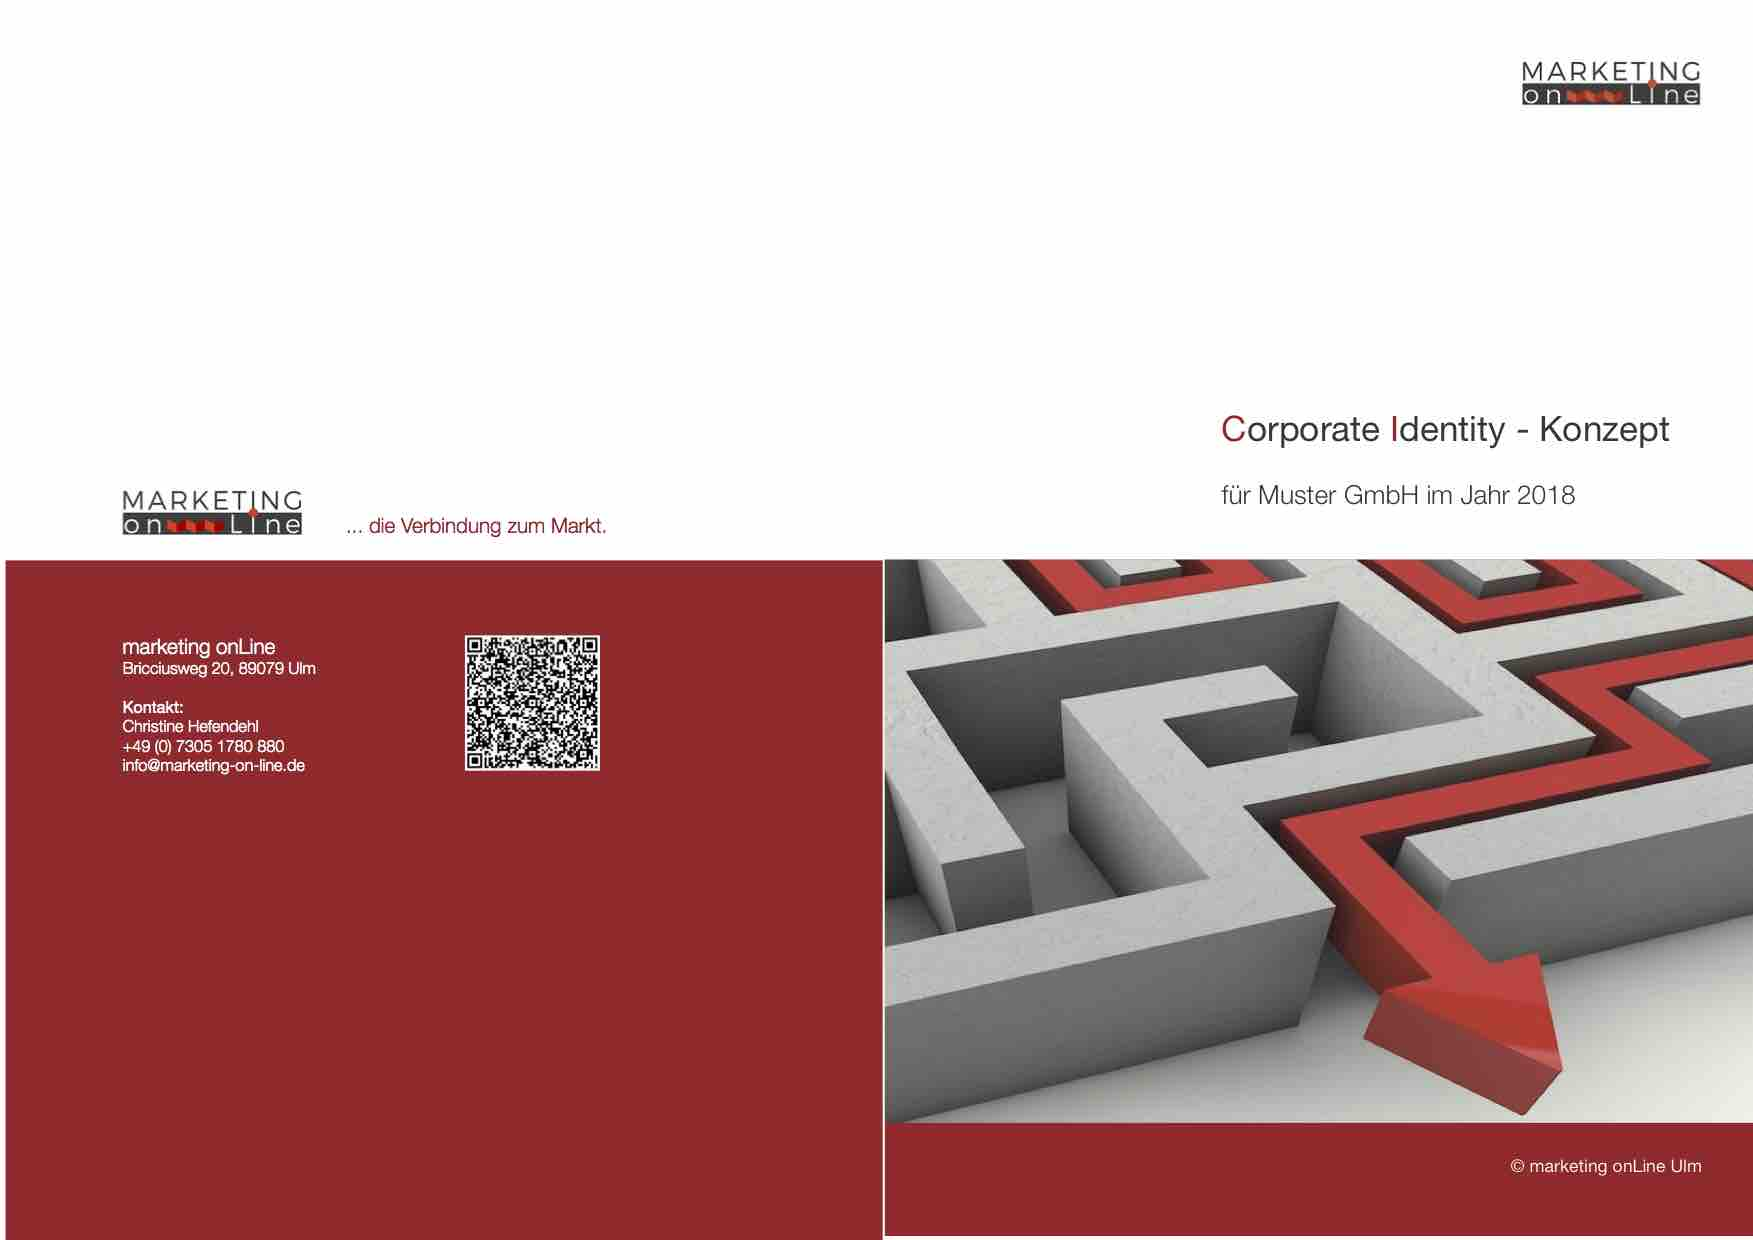 "Darstellung des Covers ""Corporate Identity Konzept"" von marketing onLine Ulm"